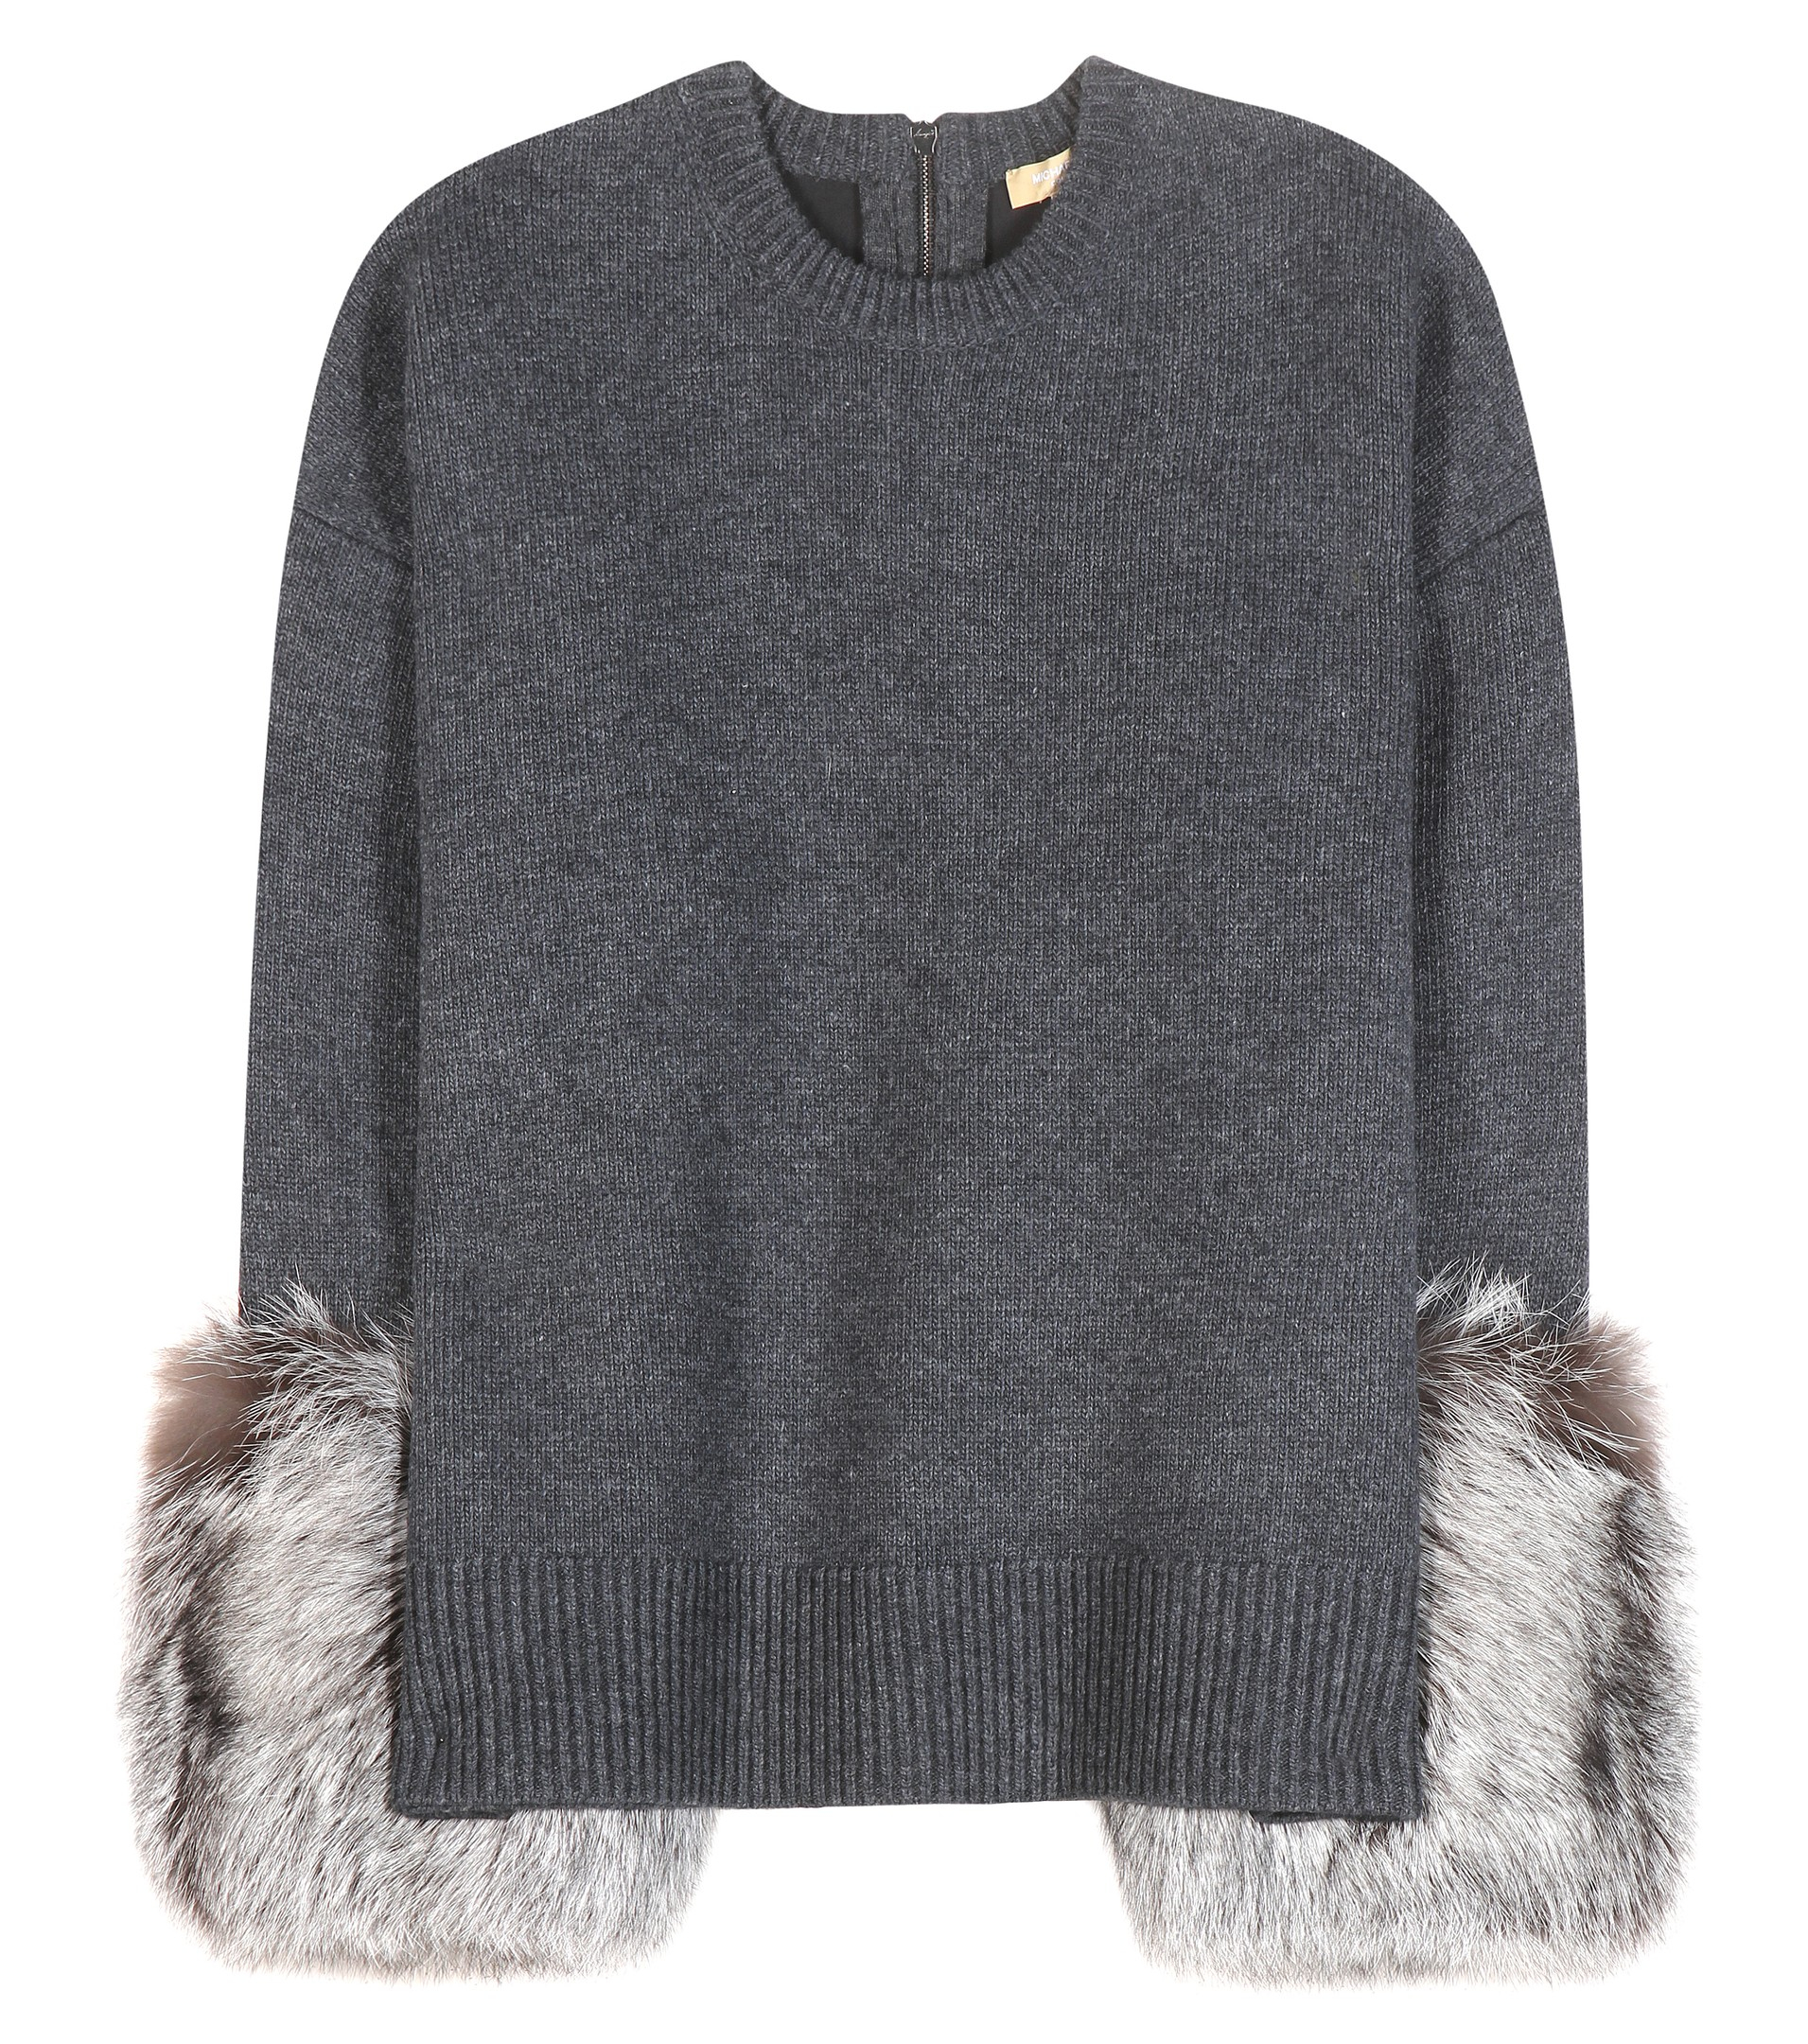 Sweater With Fur Neck And Cuff: Michael Kors Sweater With Fur-trim Cuffs In Charcoal